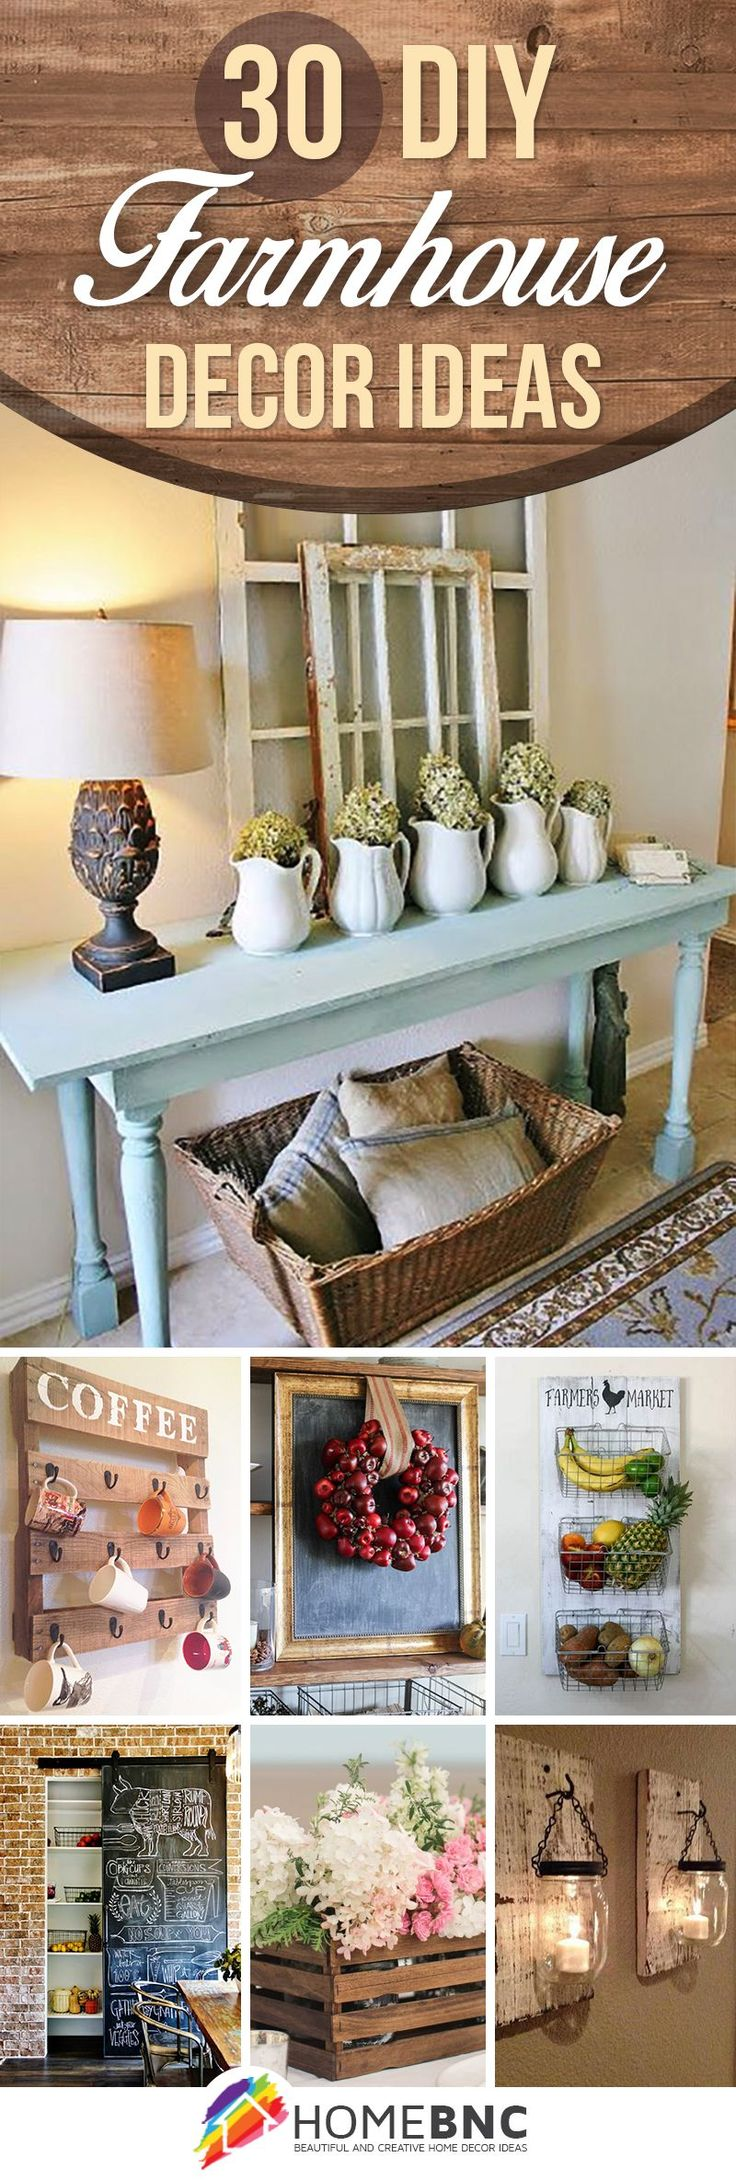 best 25+ country farmhouse decor ideas on pinterest | farm kitchen